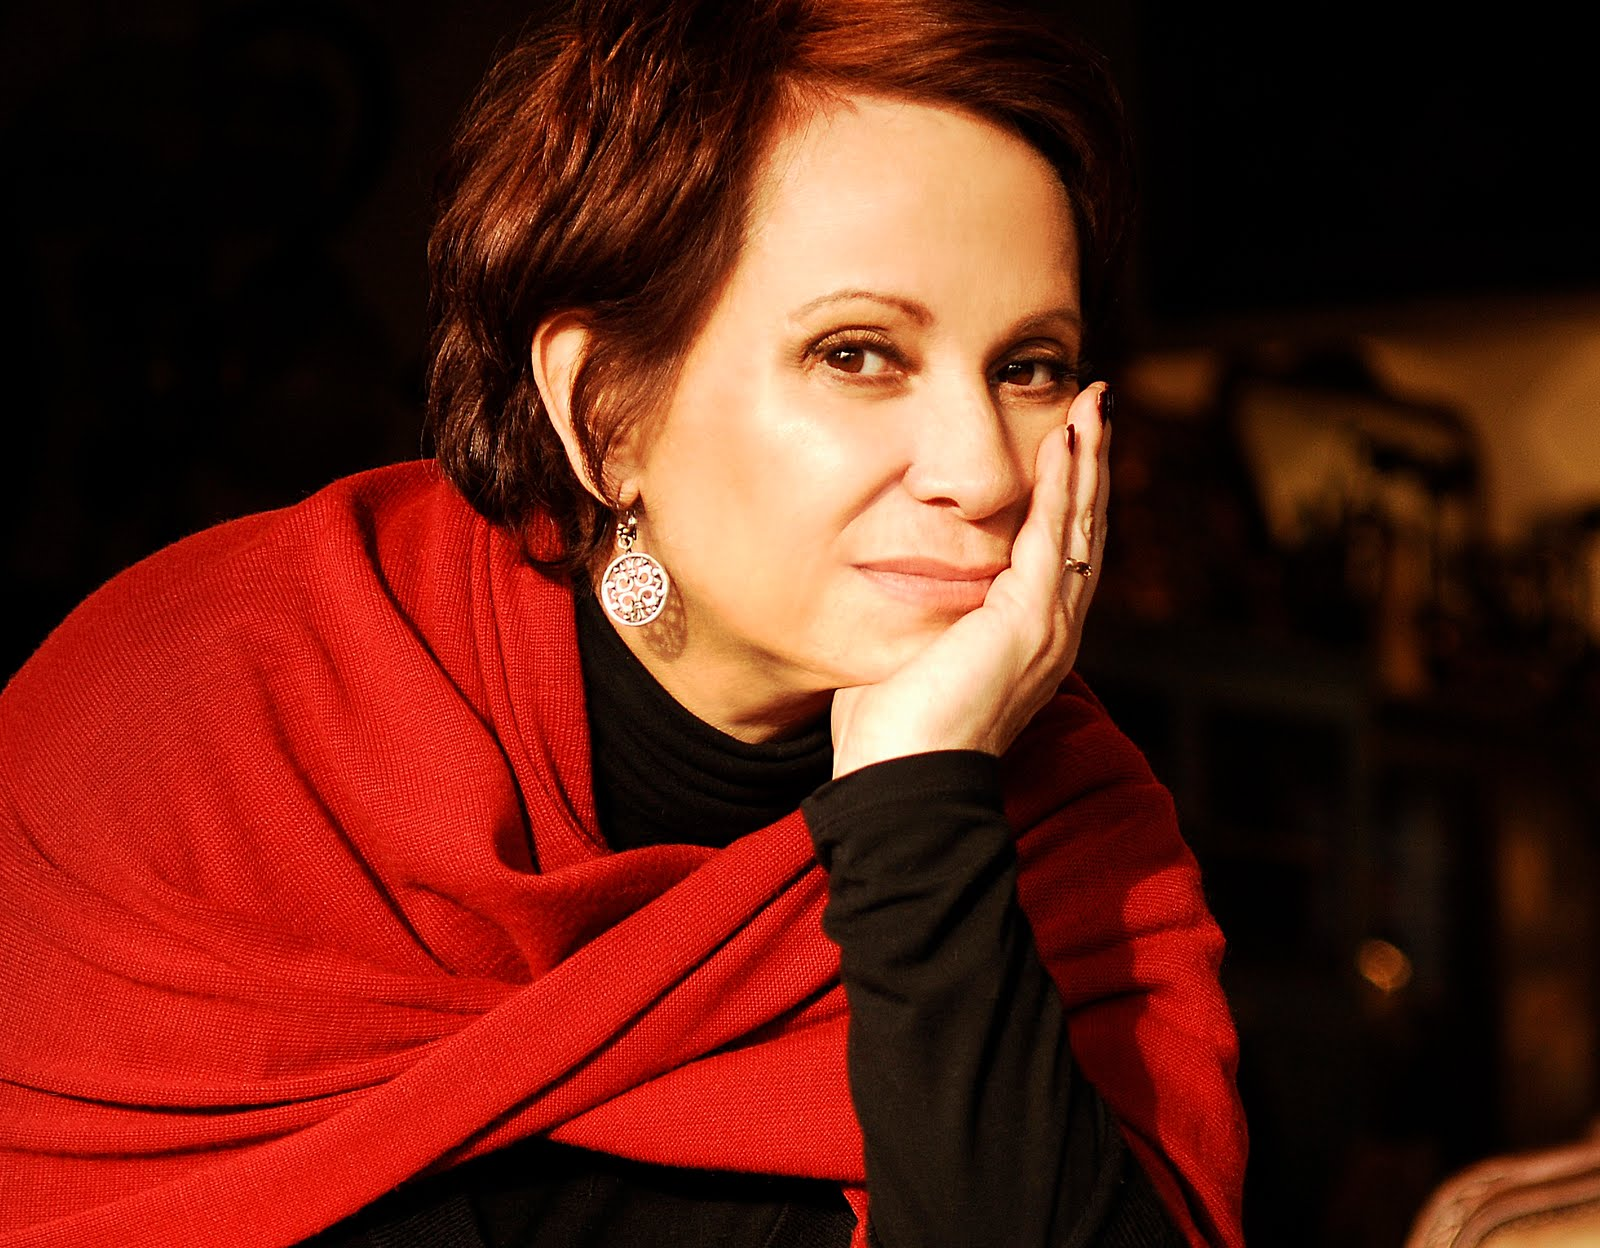 Adriana Barraza Net Worth